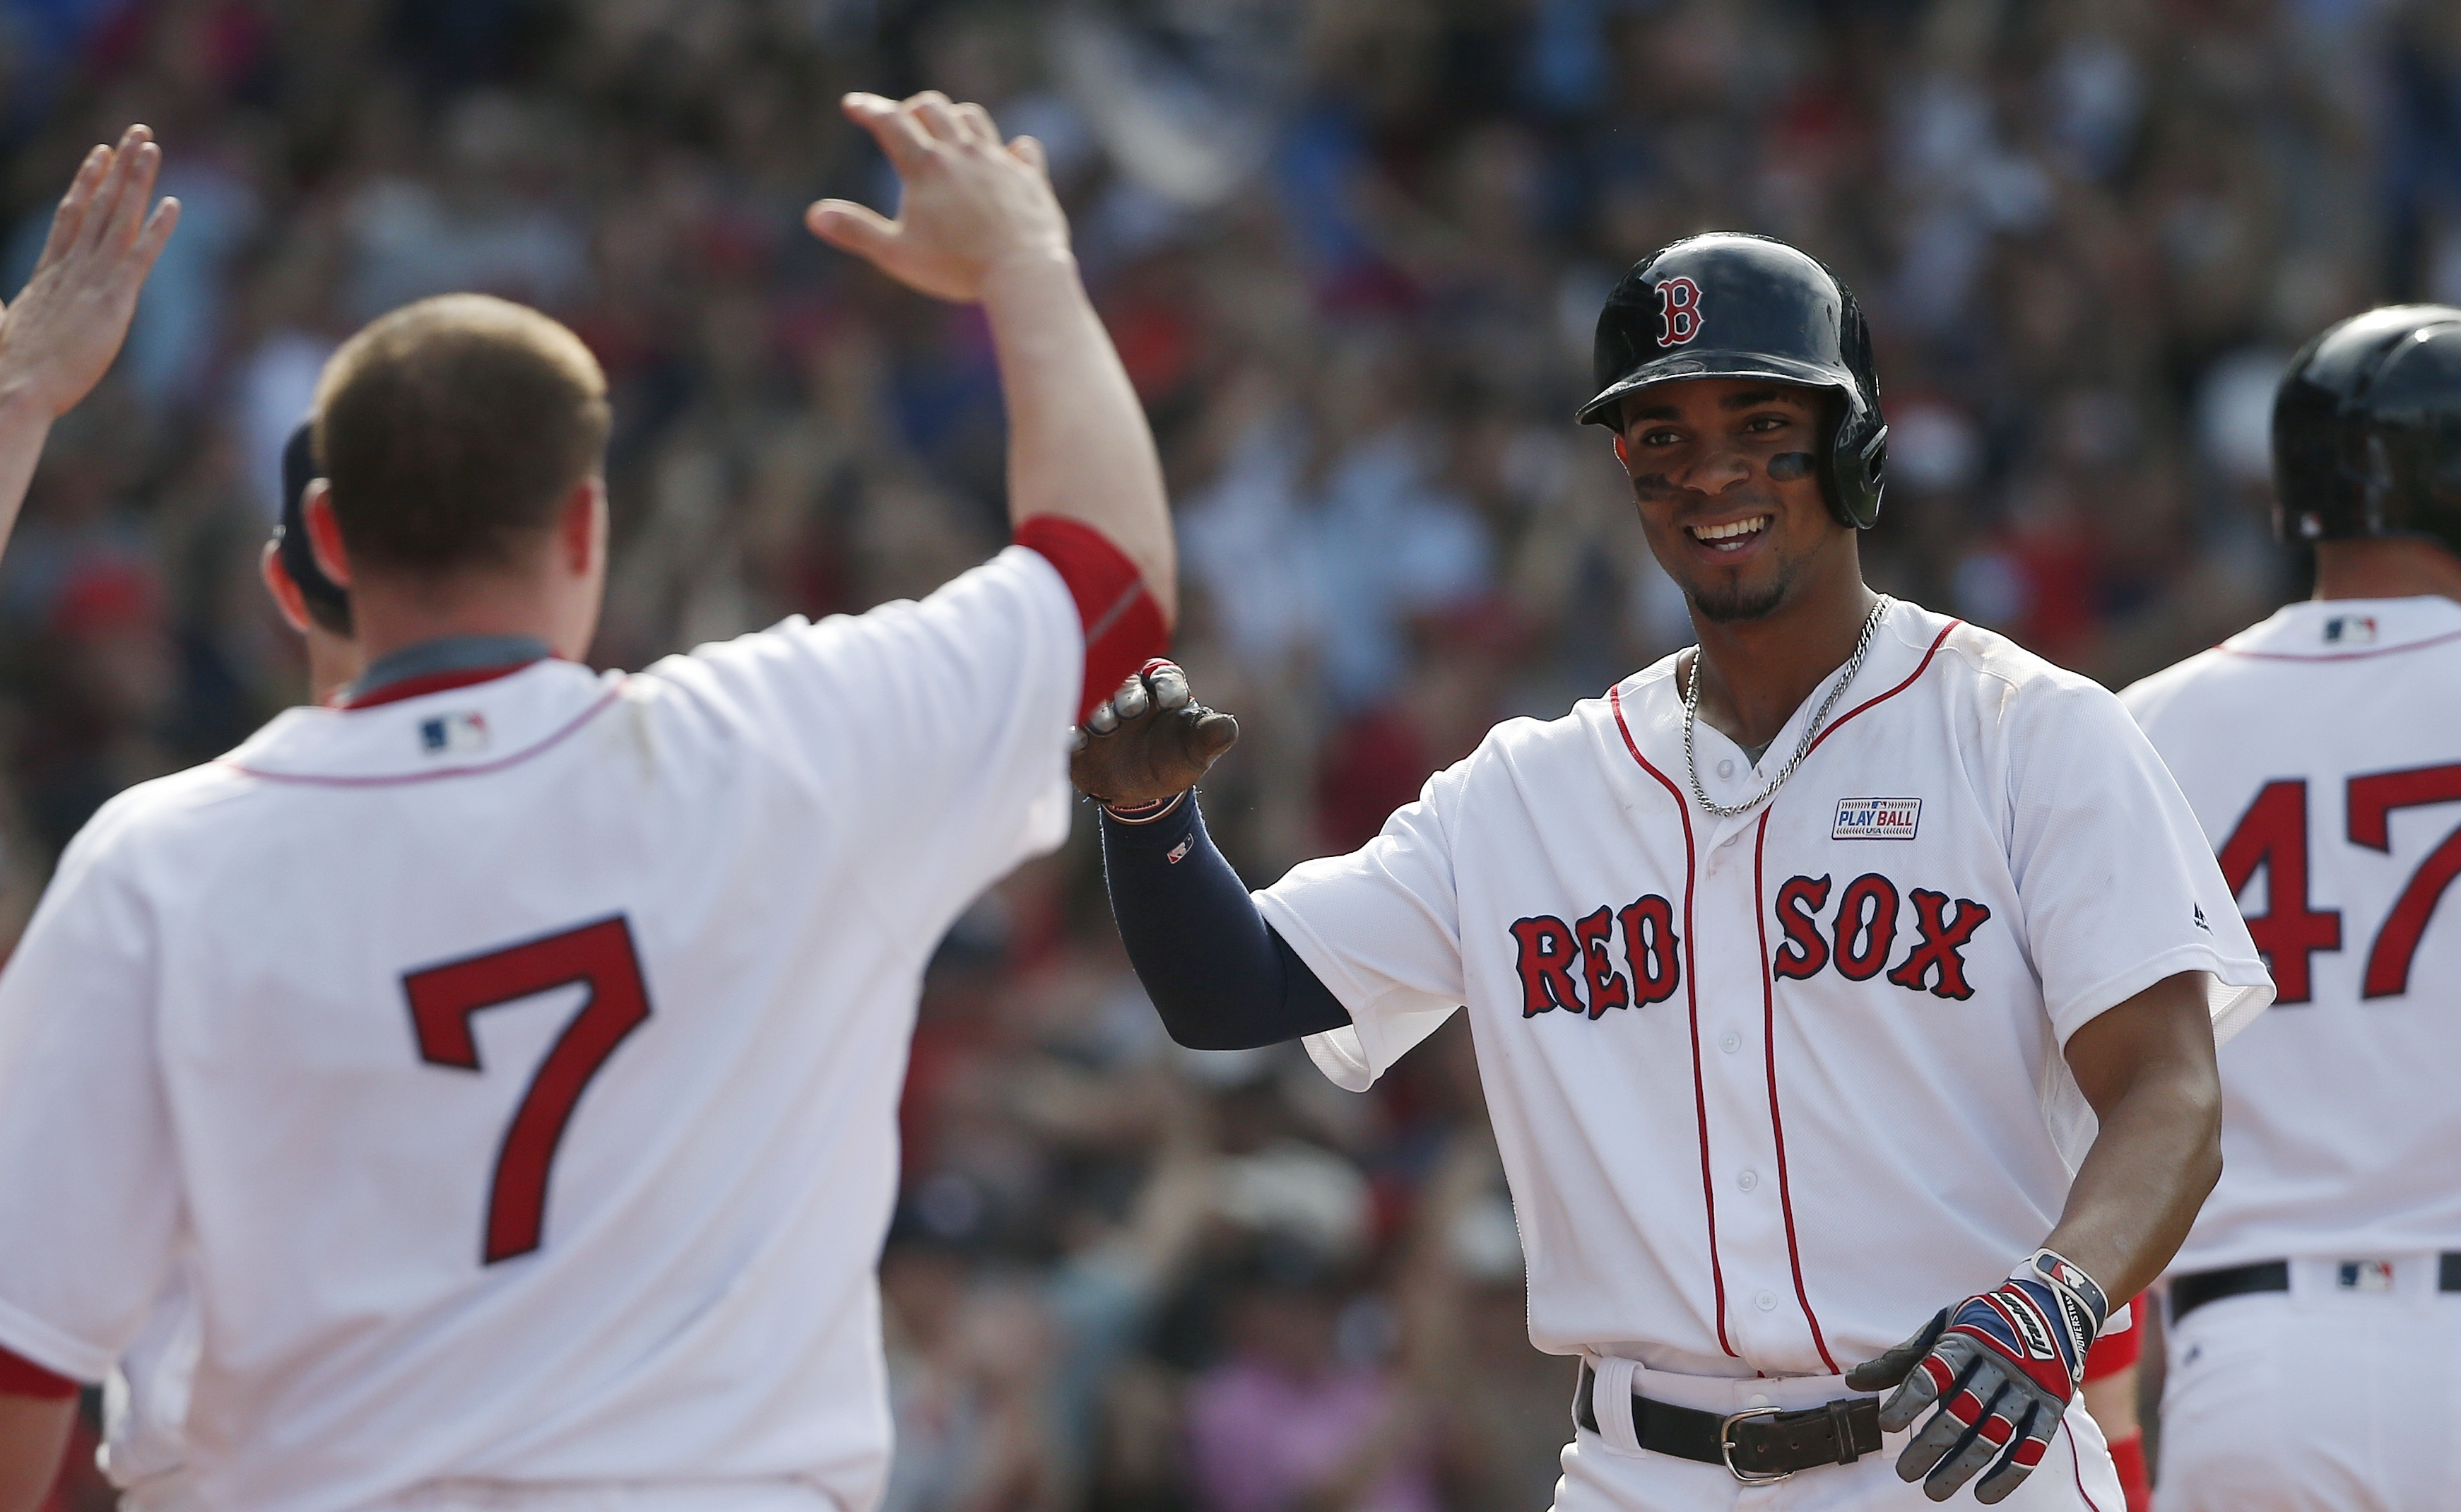 Boston Red Sox's Xander Bogaerts, right, celebrates after scoring the tying run on a triple by David Ortiz during the ninth inning of a baseball game against the Houston Astros in Boston, Saturday, May 14, 2016. (AP Photo/Michael Dwyer)